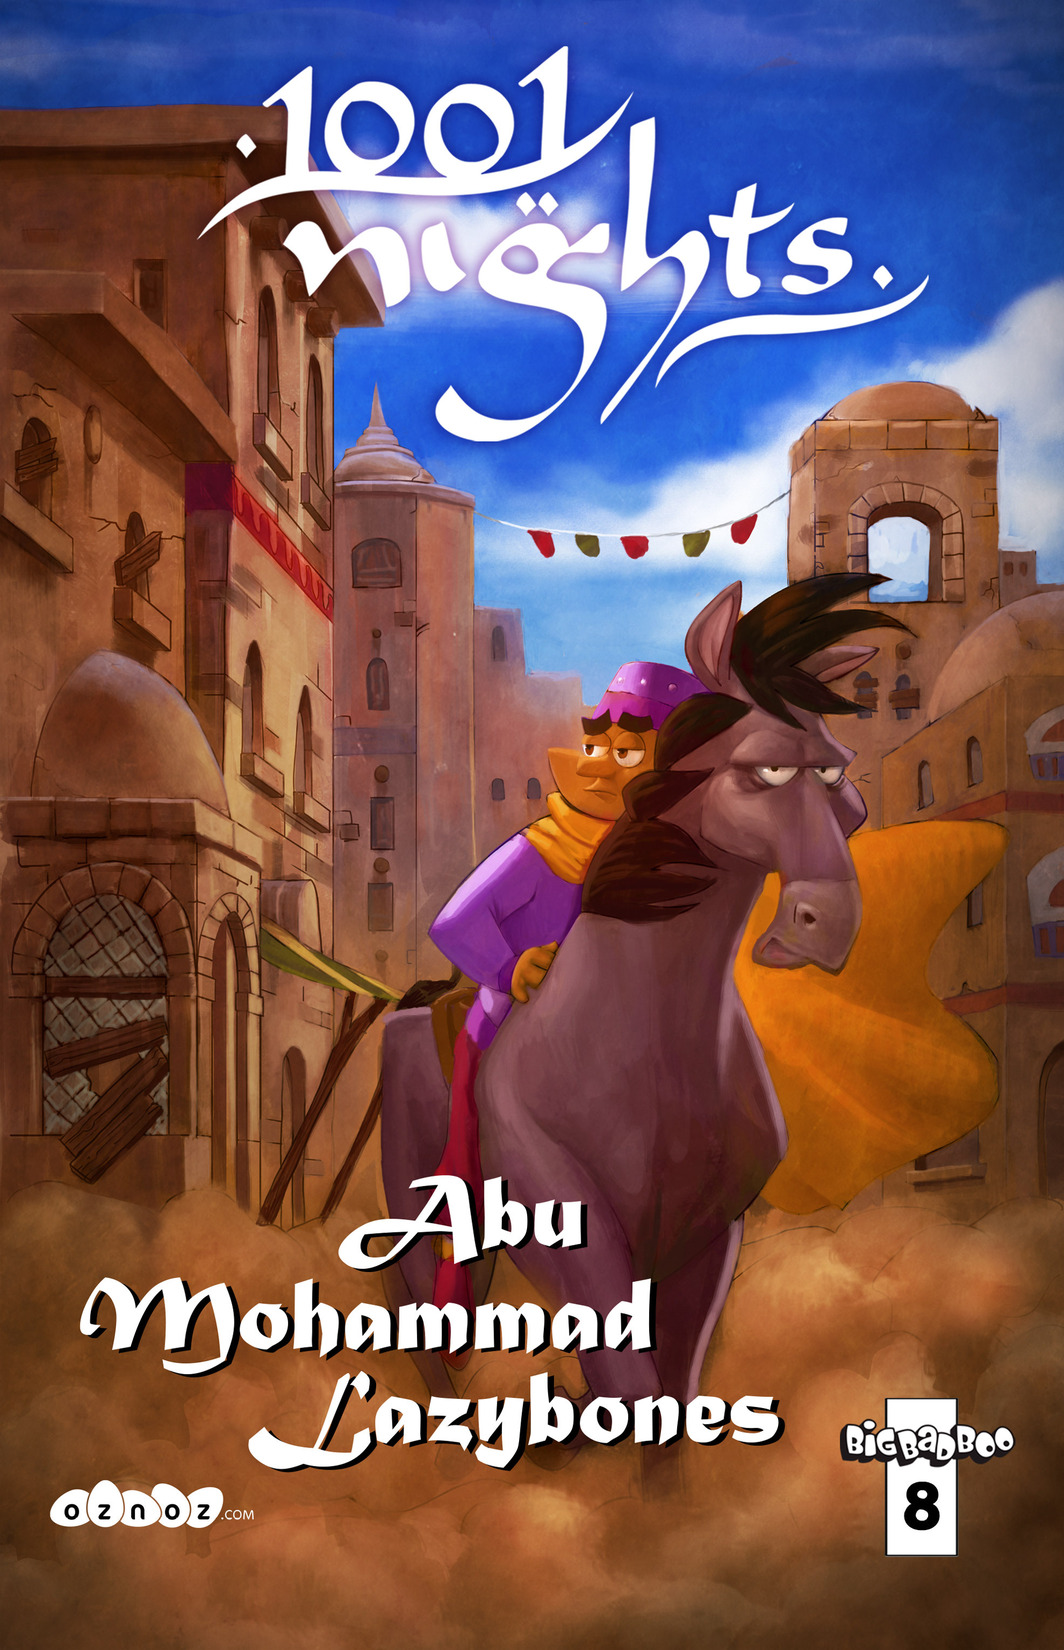 Read online 1001 Nights comic -  Issue #8 - 1